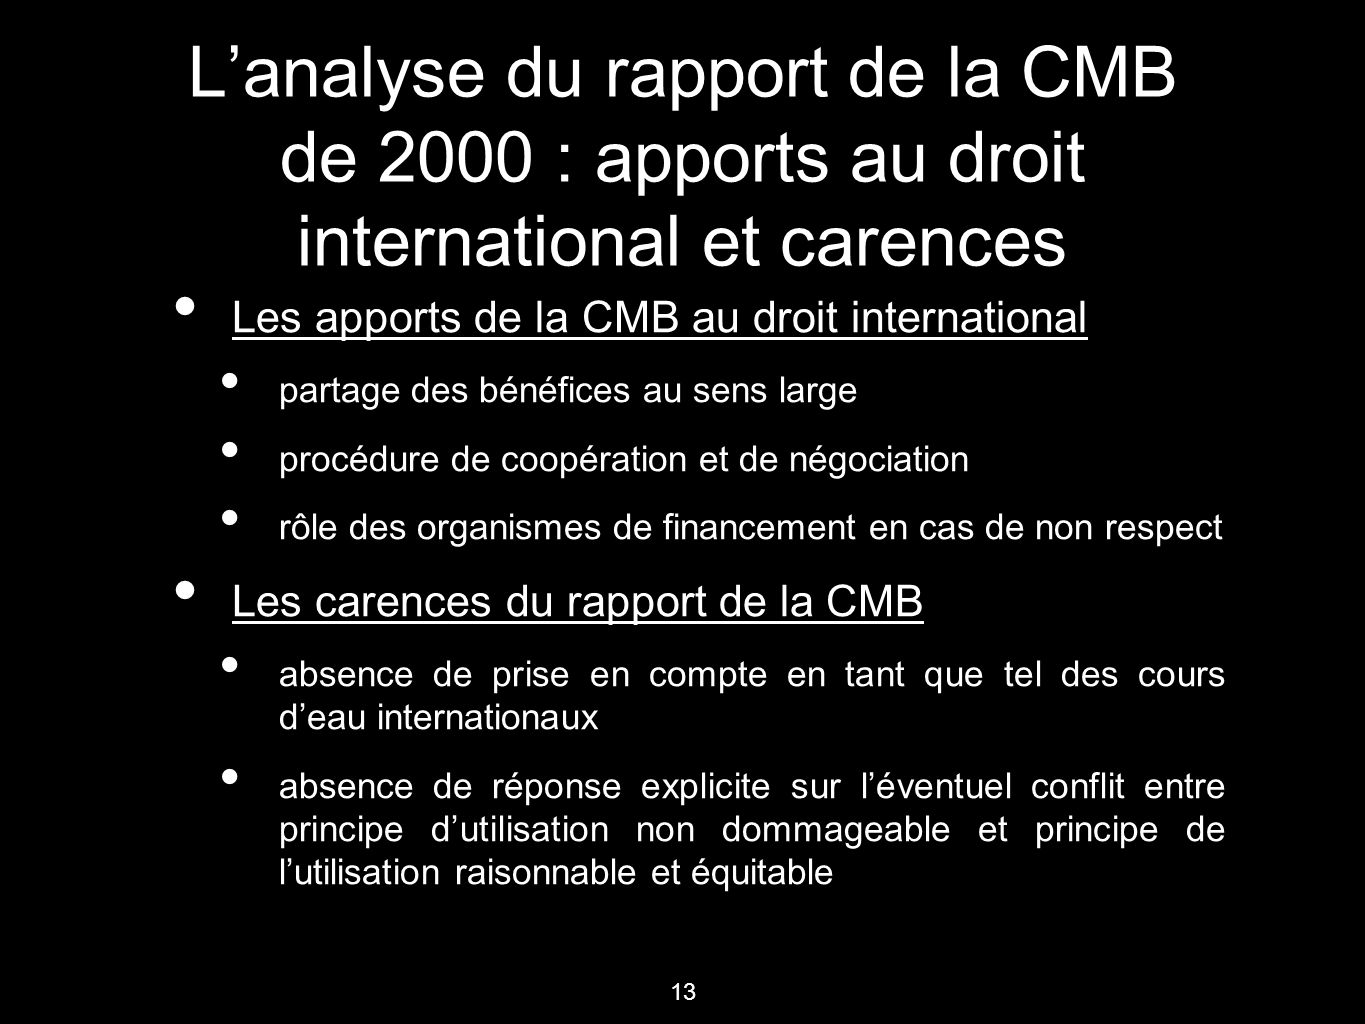 L'analyse du rapport de la CMB de 2000 : apports au droit international et carences